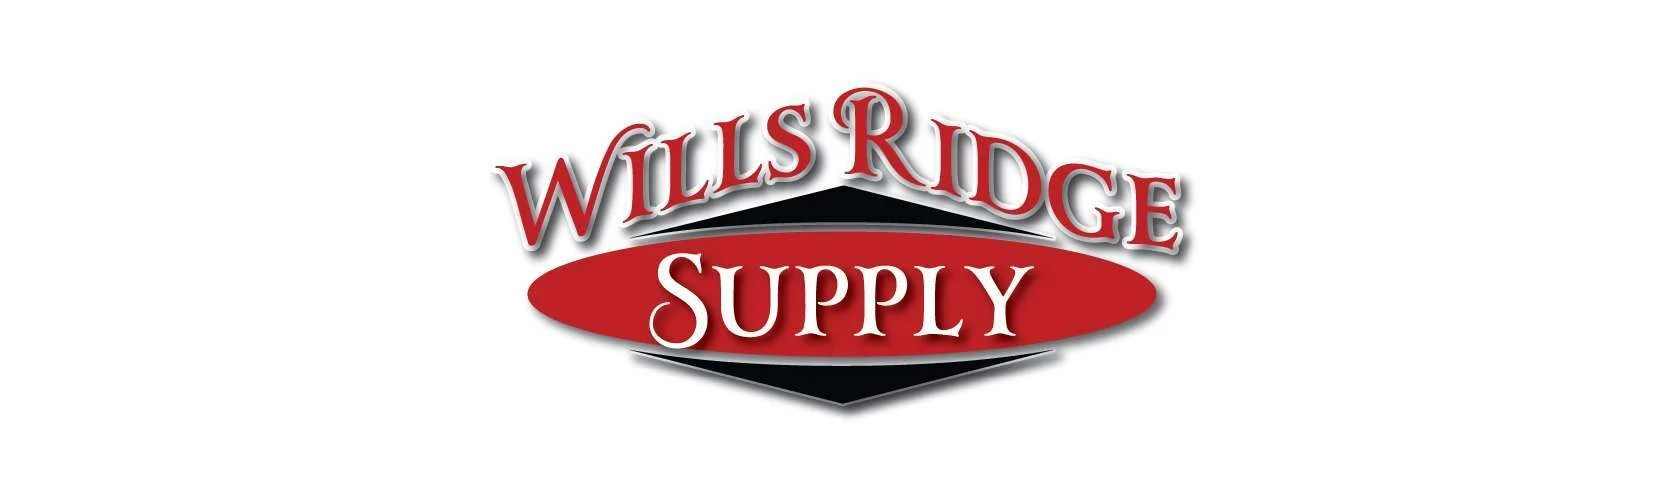 Wills Ridge Supply